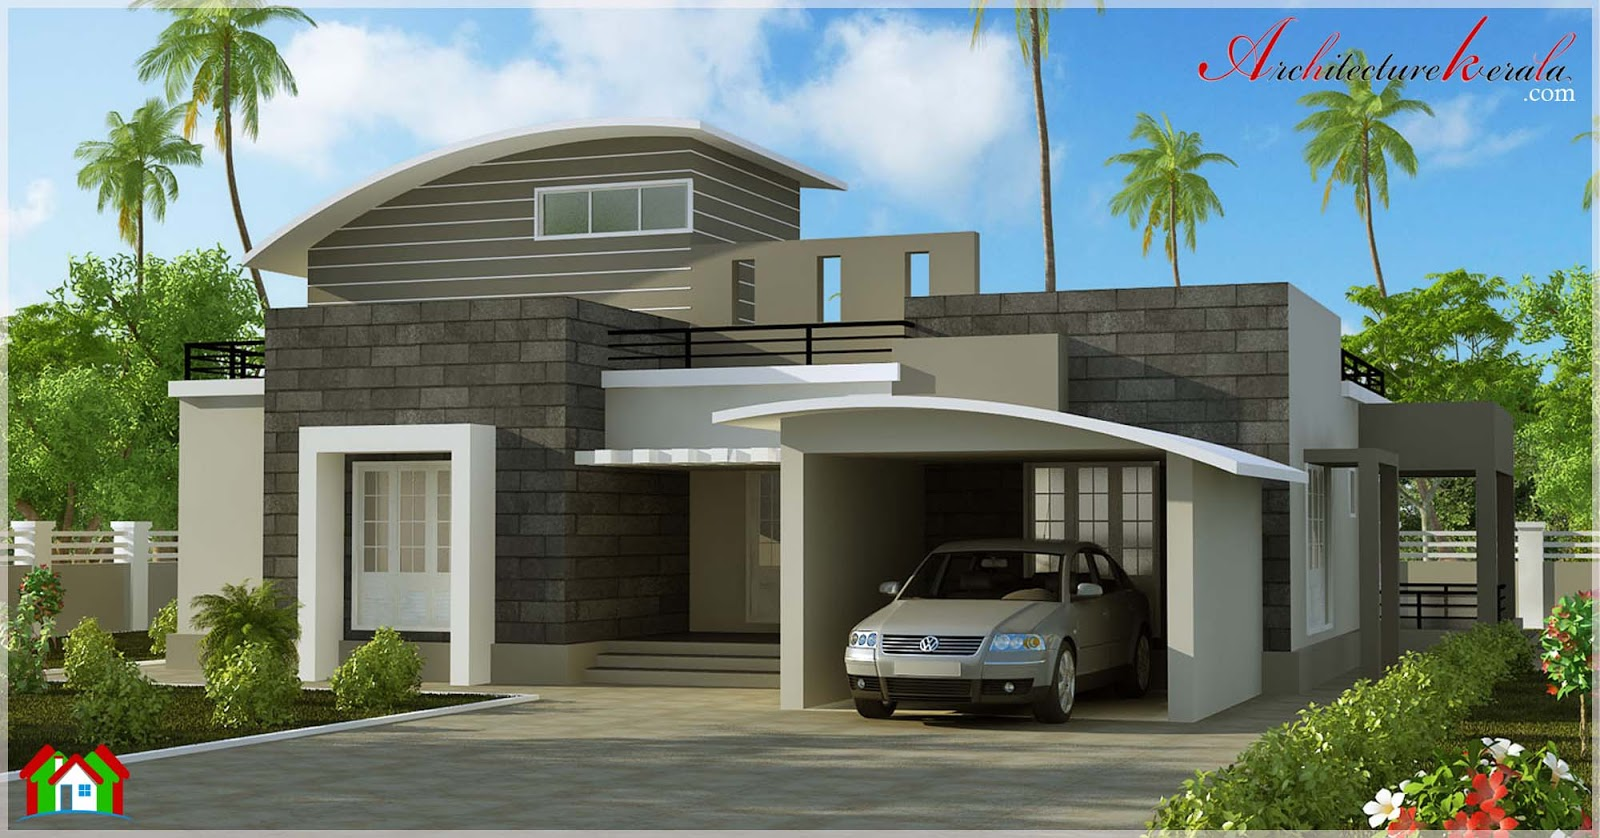 Contemporary style villa elevation architecture kerala for Kerala style home designs and elevations